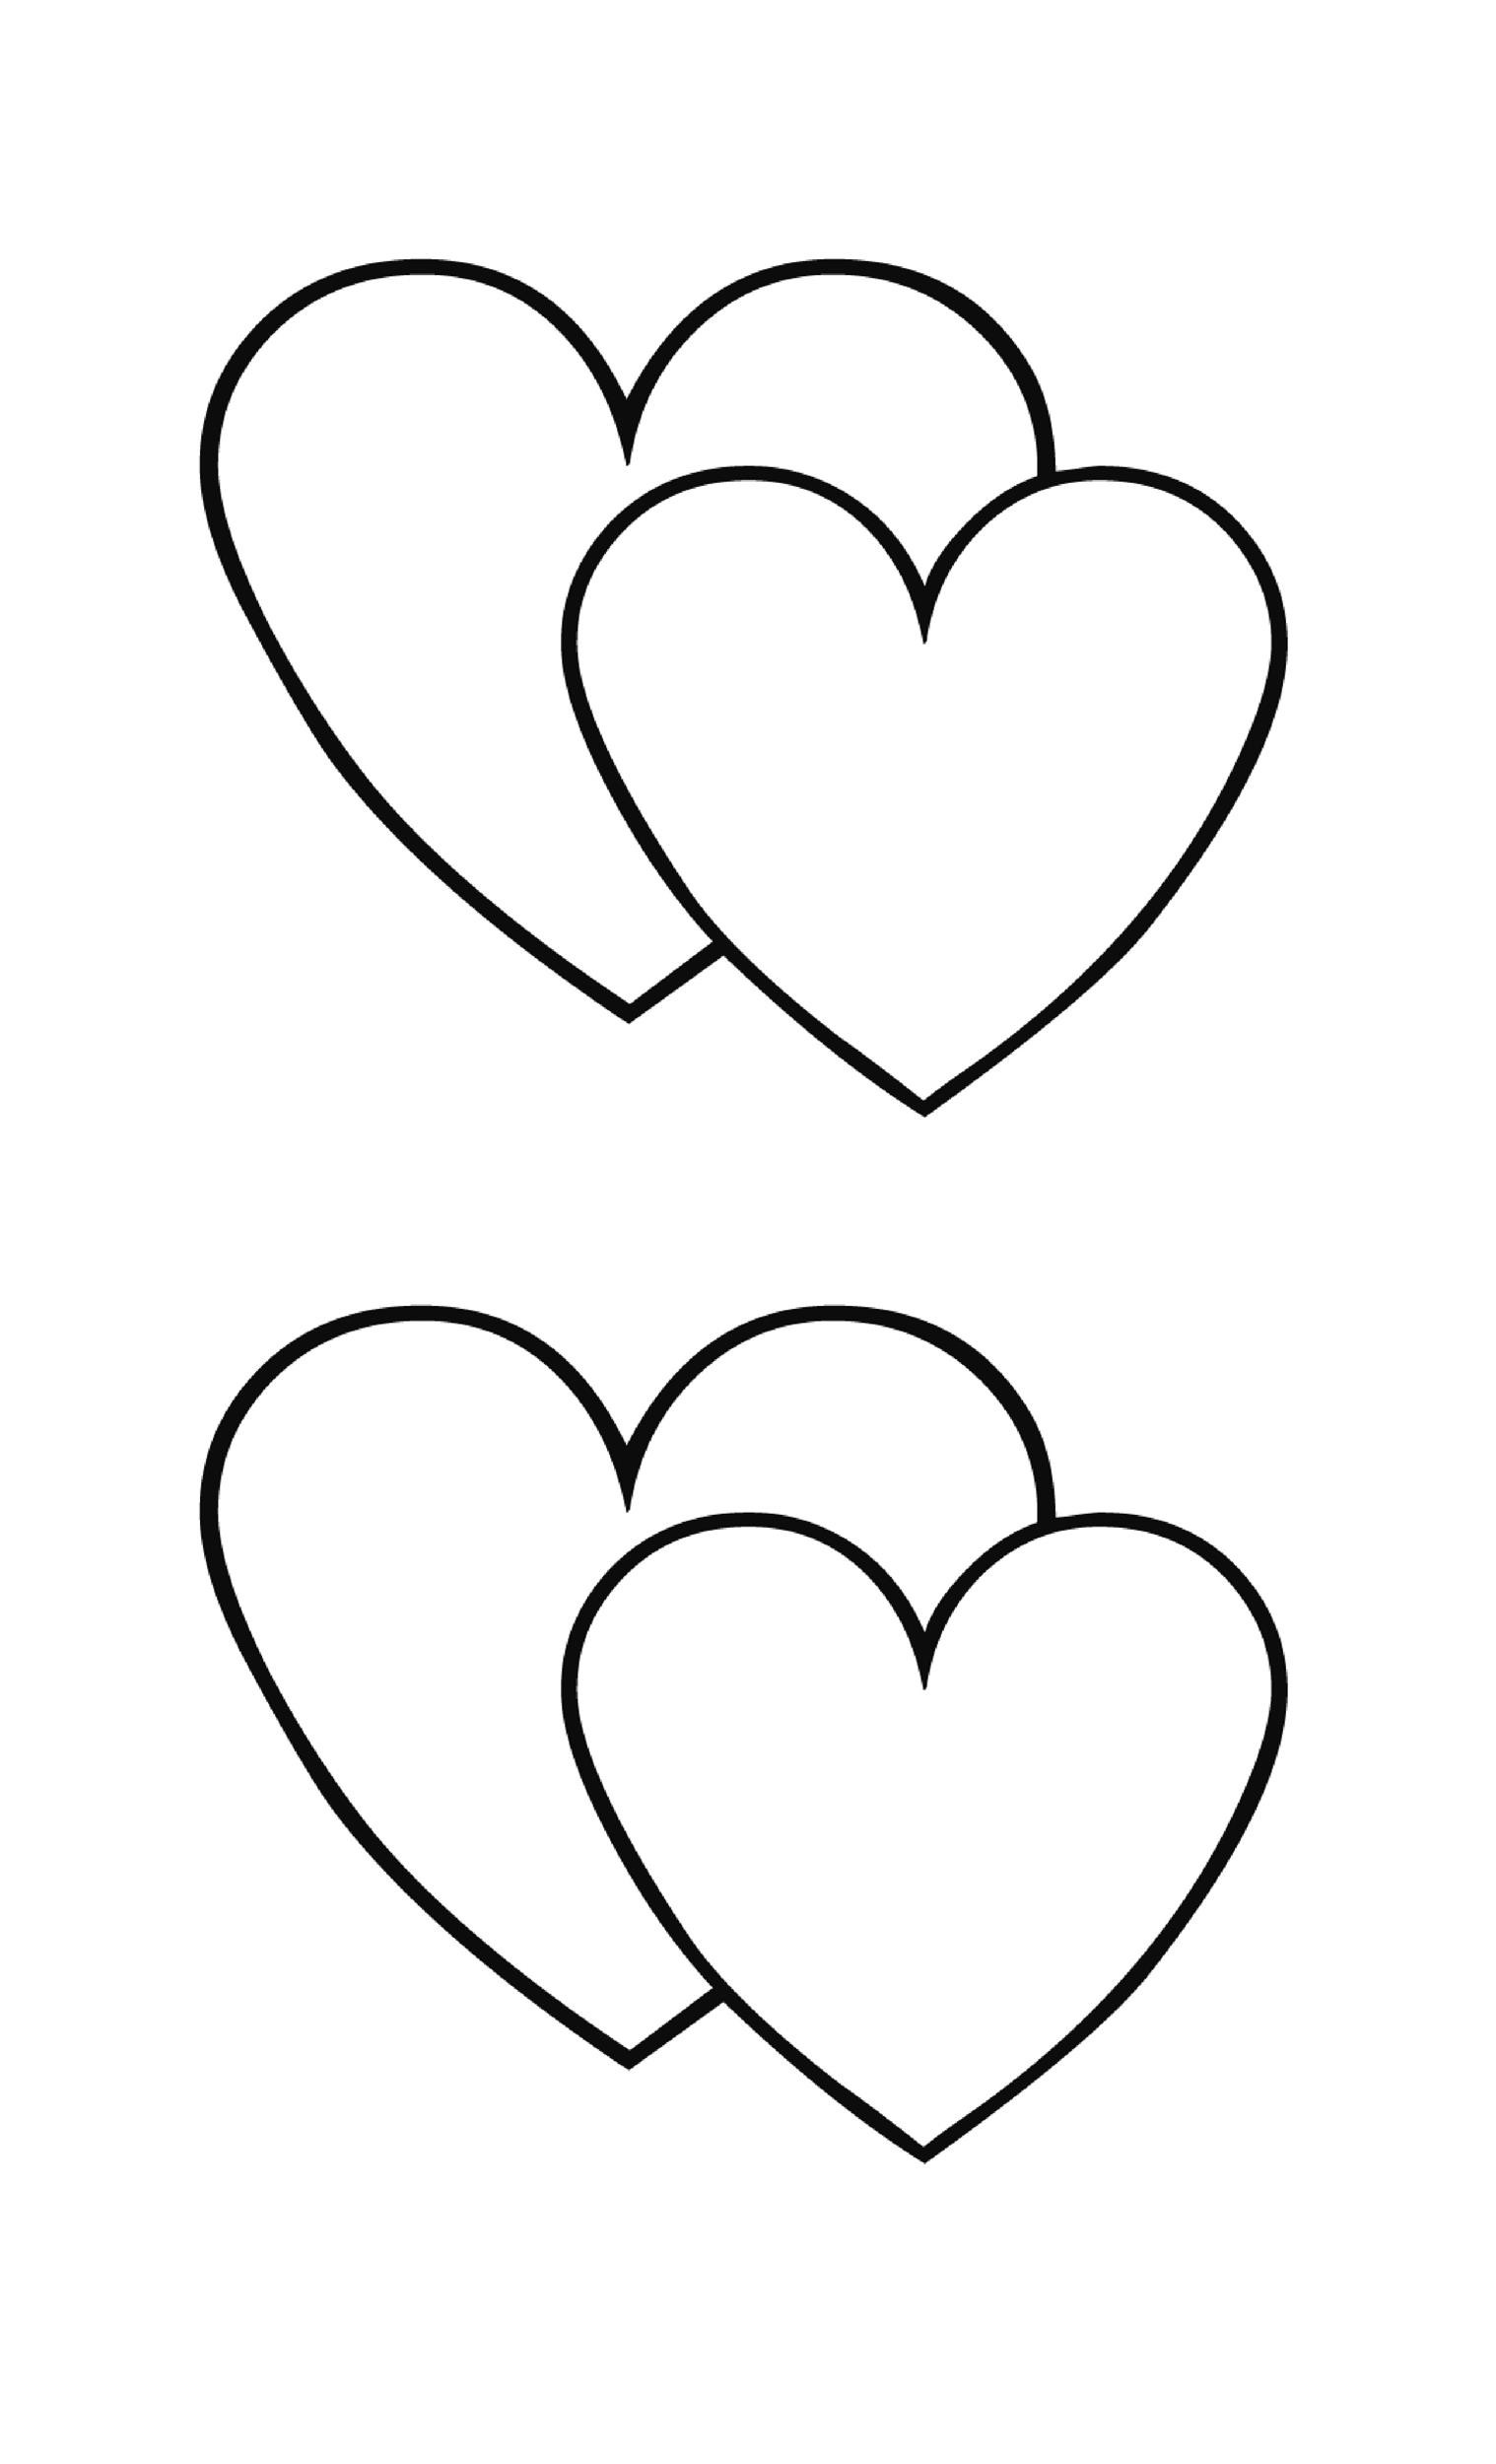 40 Printable Heart Templates & 15 Usage Examples